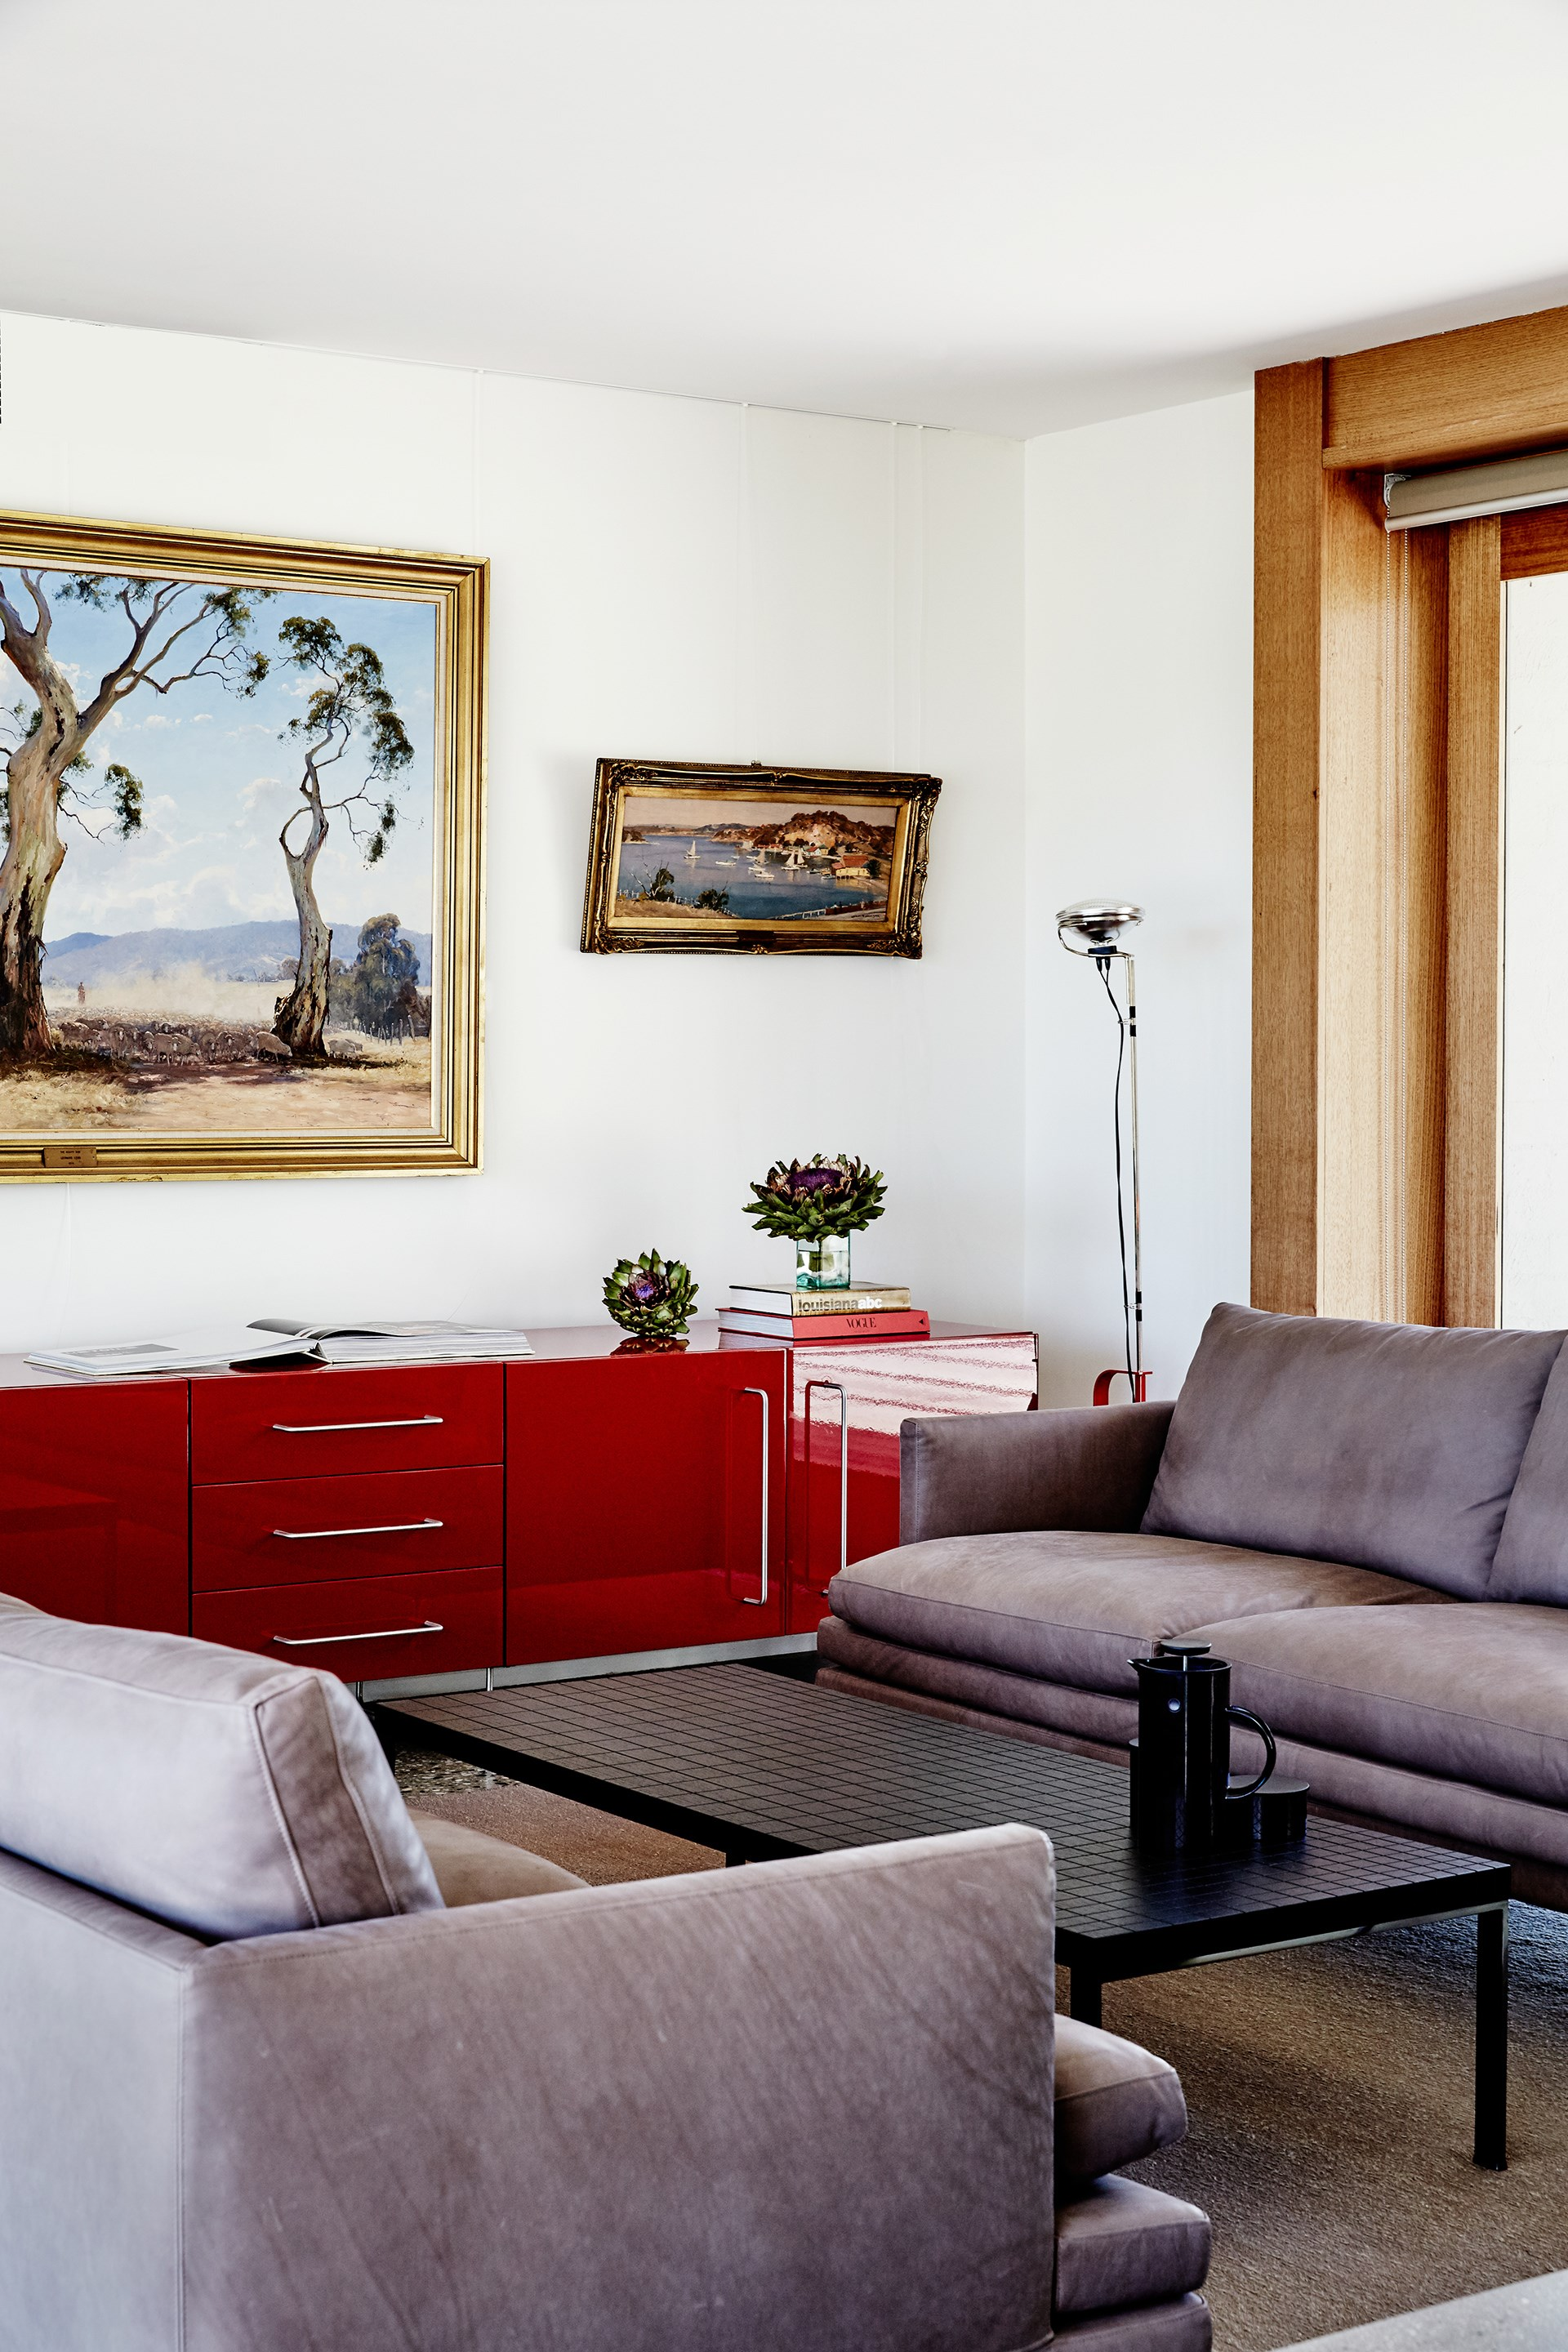 'William' three-seater **sofas** by Zanotta face off across a 'Geometrie' **coffee table** by Poltrona Frau. The red **sideboard** is a Cappellini 'Plan' unit. **Artworks** are by Leonard Long (centre) and Robert Johnson.